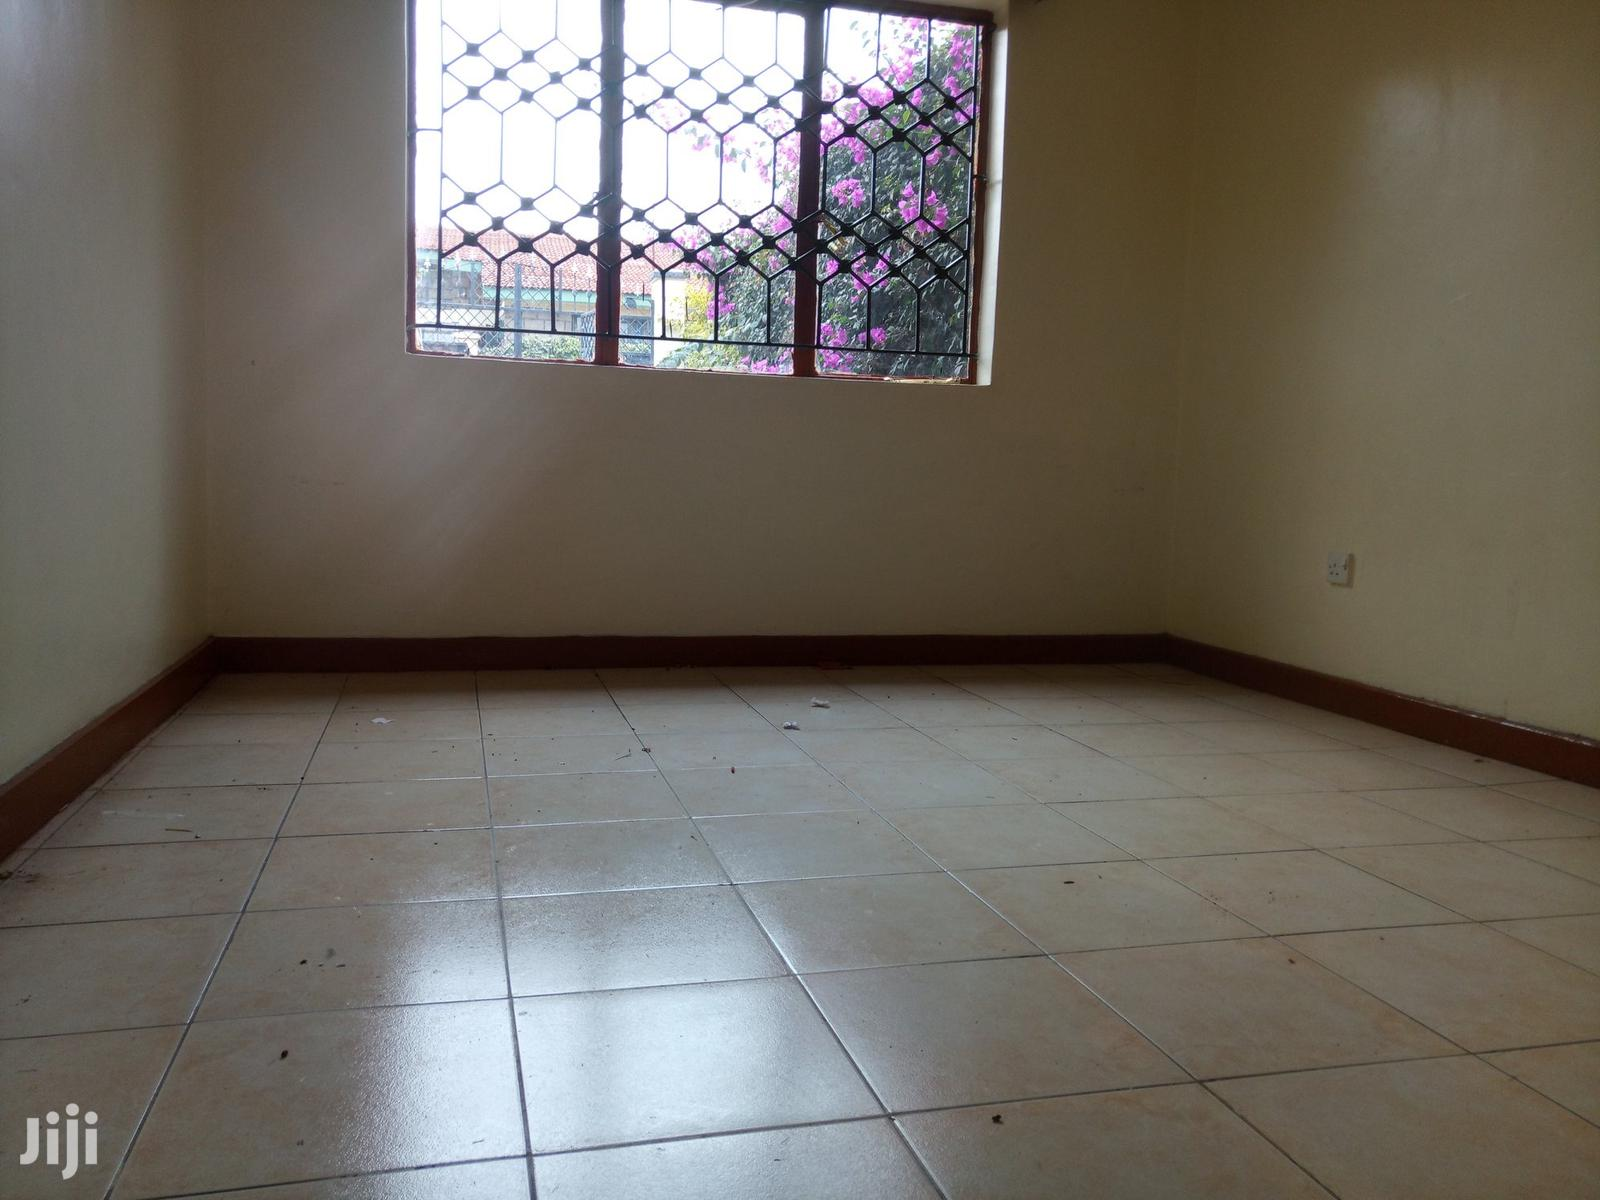 Valleyview 3br Bungalow | Houses & Apartments For Rent for sale in Syokimau/Mulolongo, Machakos, Kenya